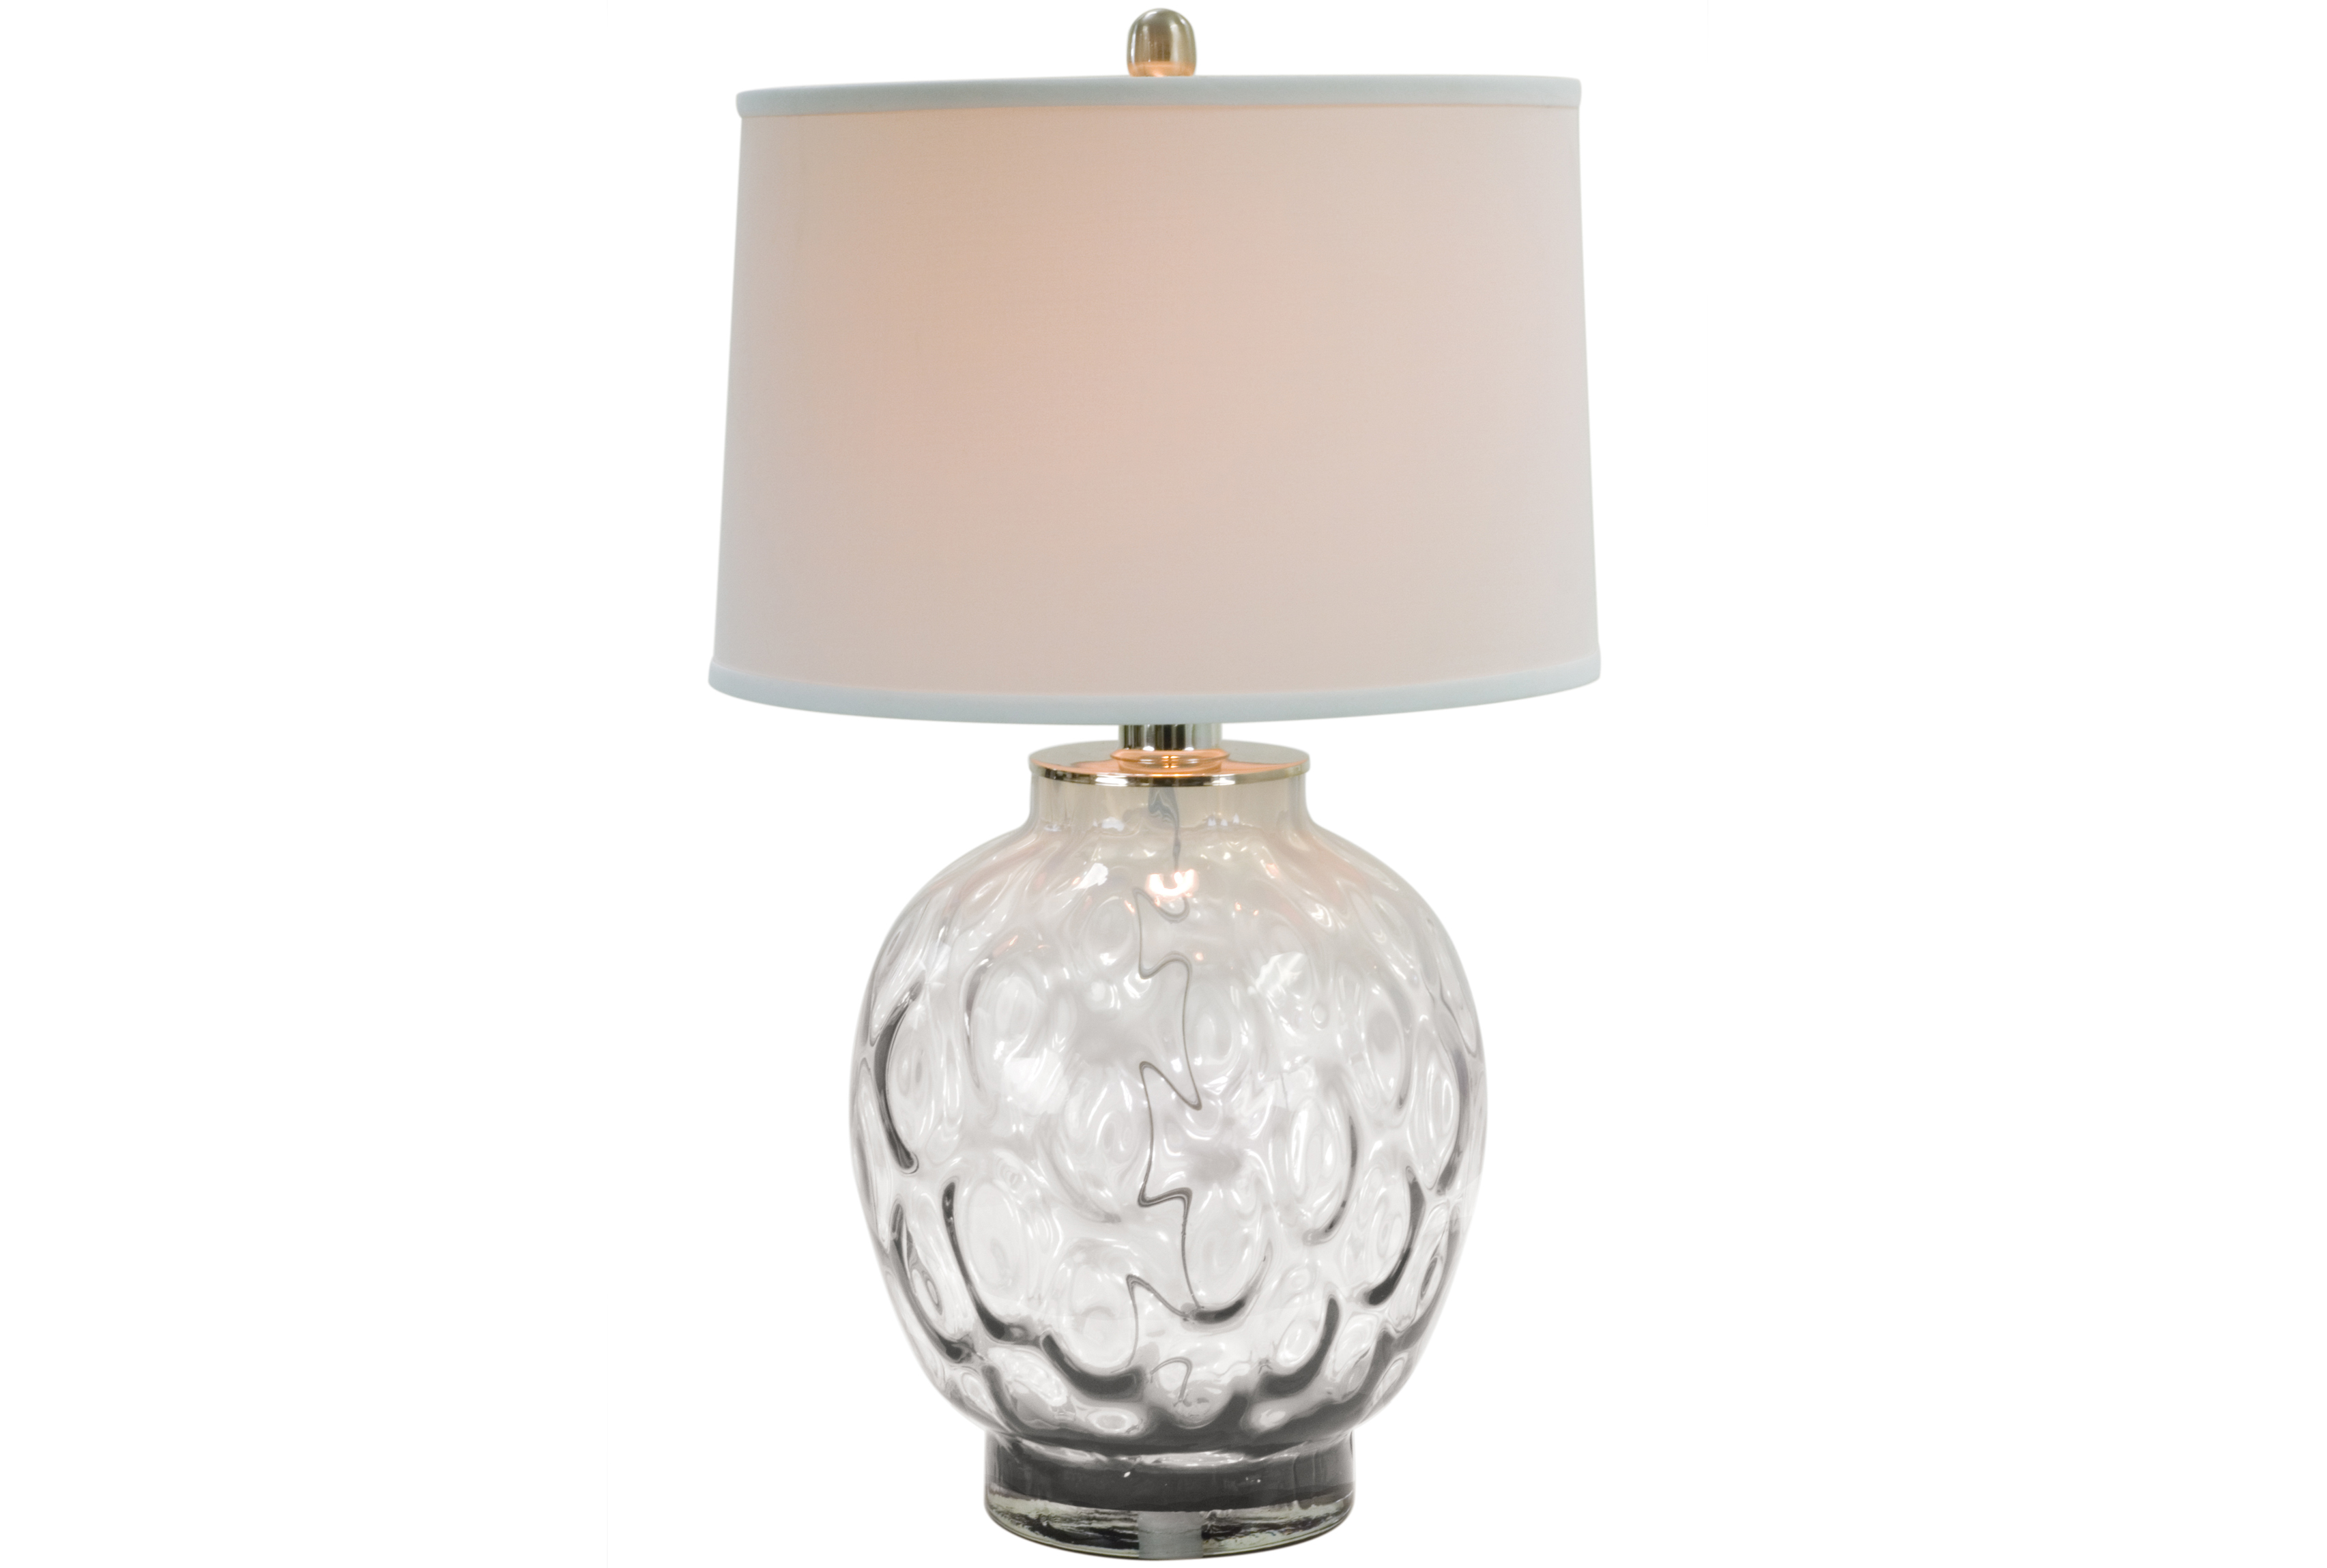 Charmant Table Lamp Bubble Glass Clear   360